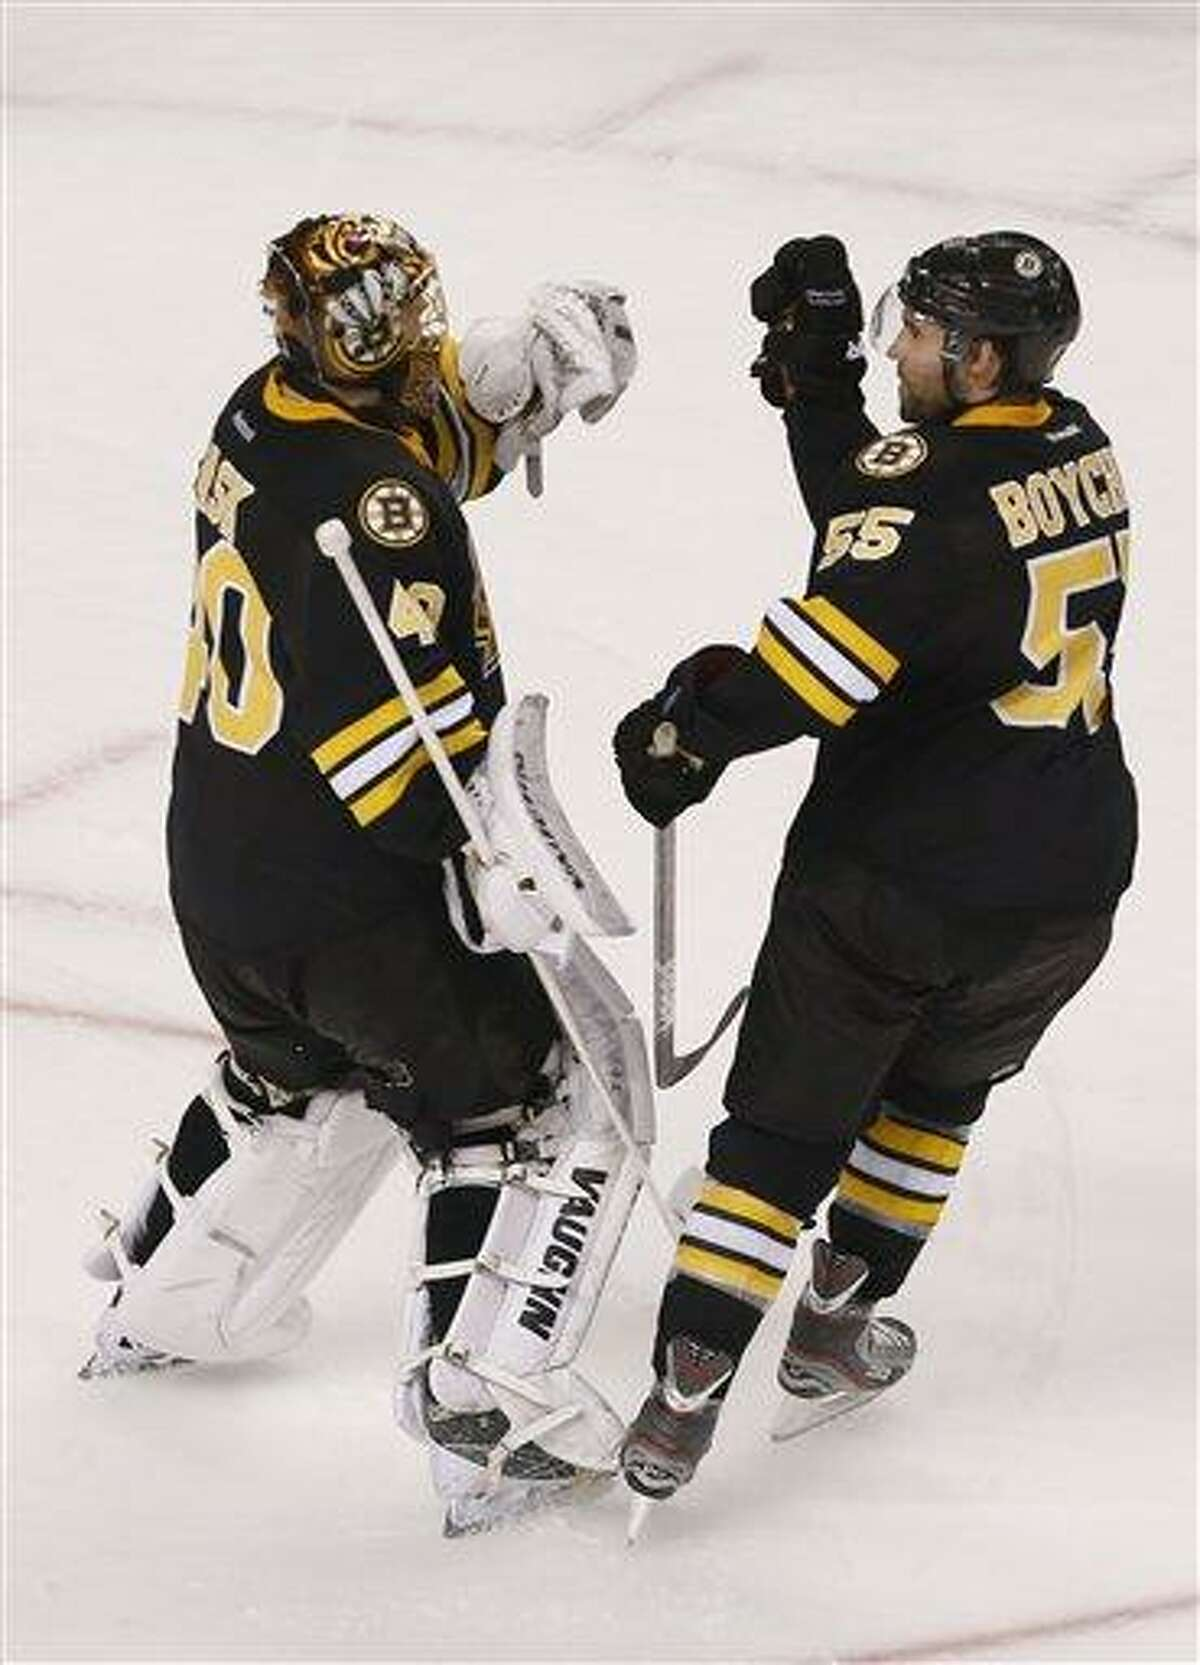 Boston Bruins goalie Tuukka Rask (40) is congratulated by teammate Boston Bruins defenseman Johnny Boychuk (55) after a win during a shoot out of an NHL hockey game in Boston, Tuesday, Jan. 29, 2013. (AP Photo/Charles Krupa)